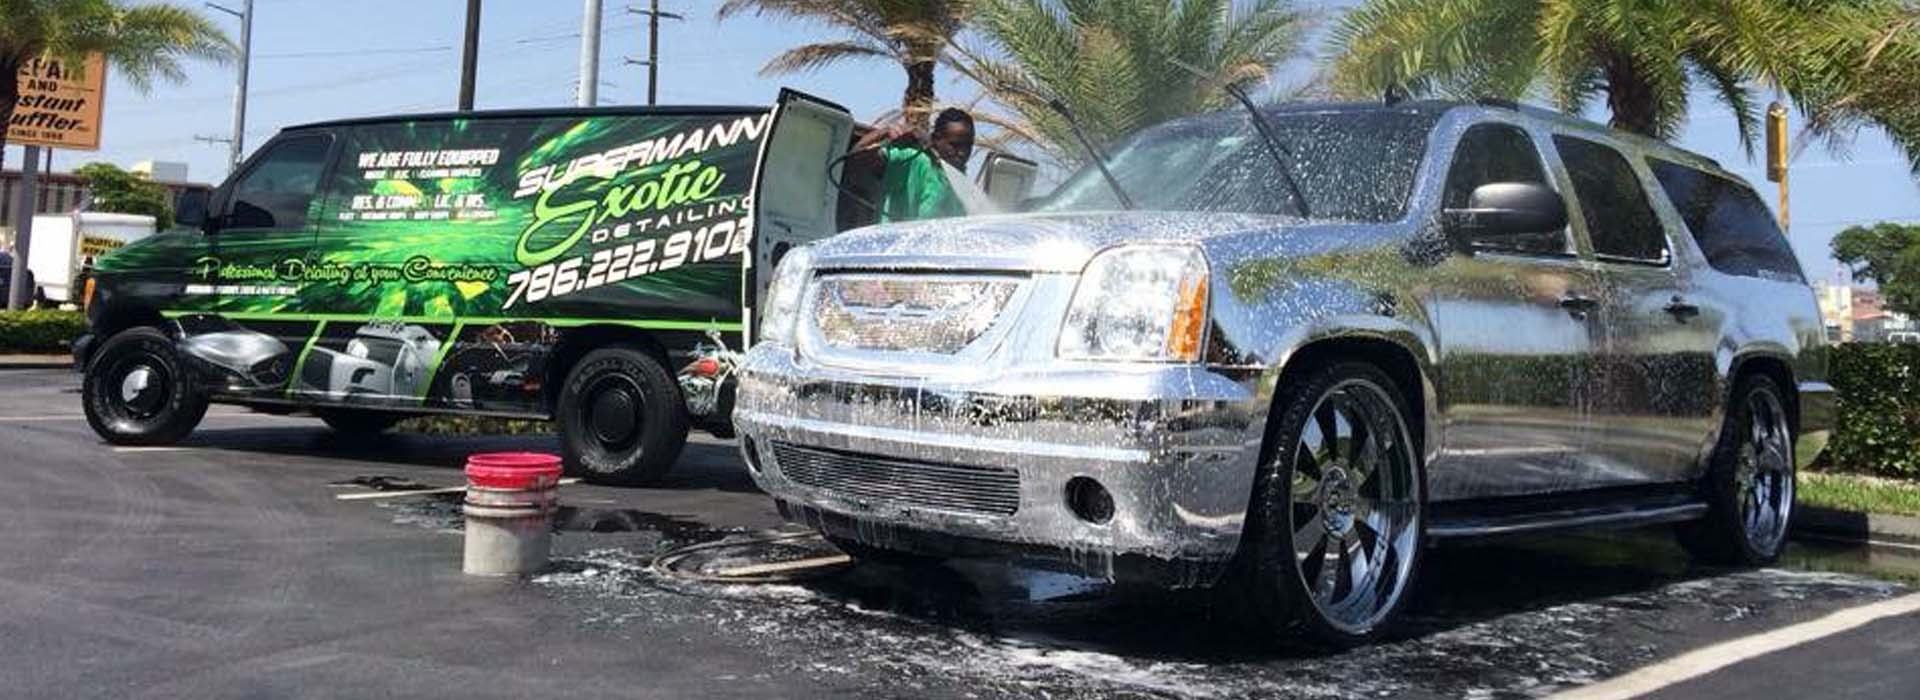 Mobile Car Wash Service Boca Raton Fl